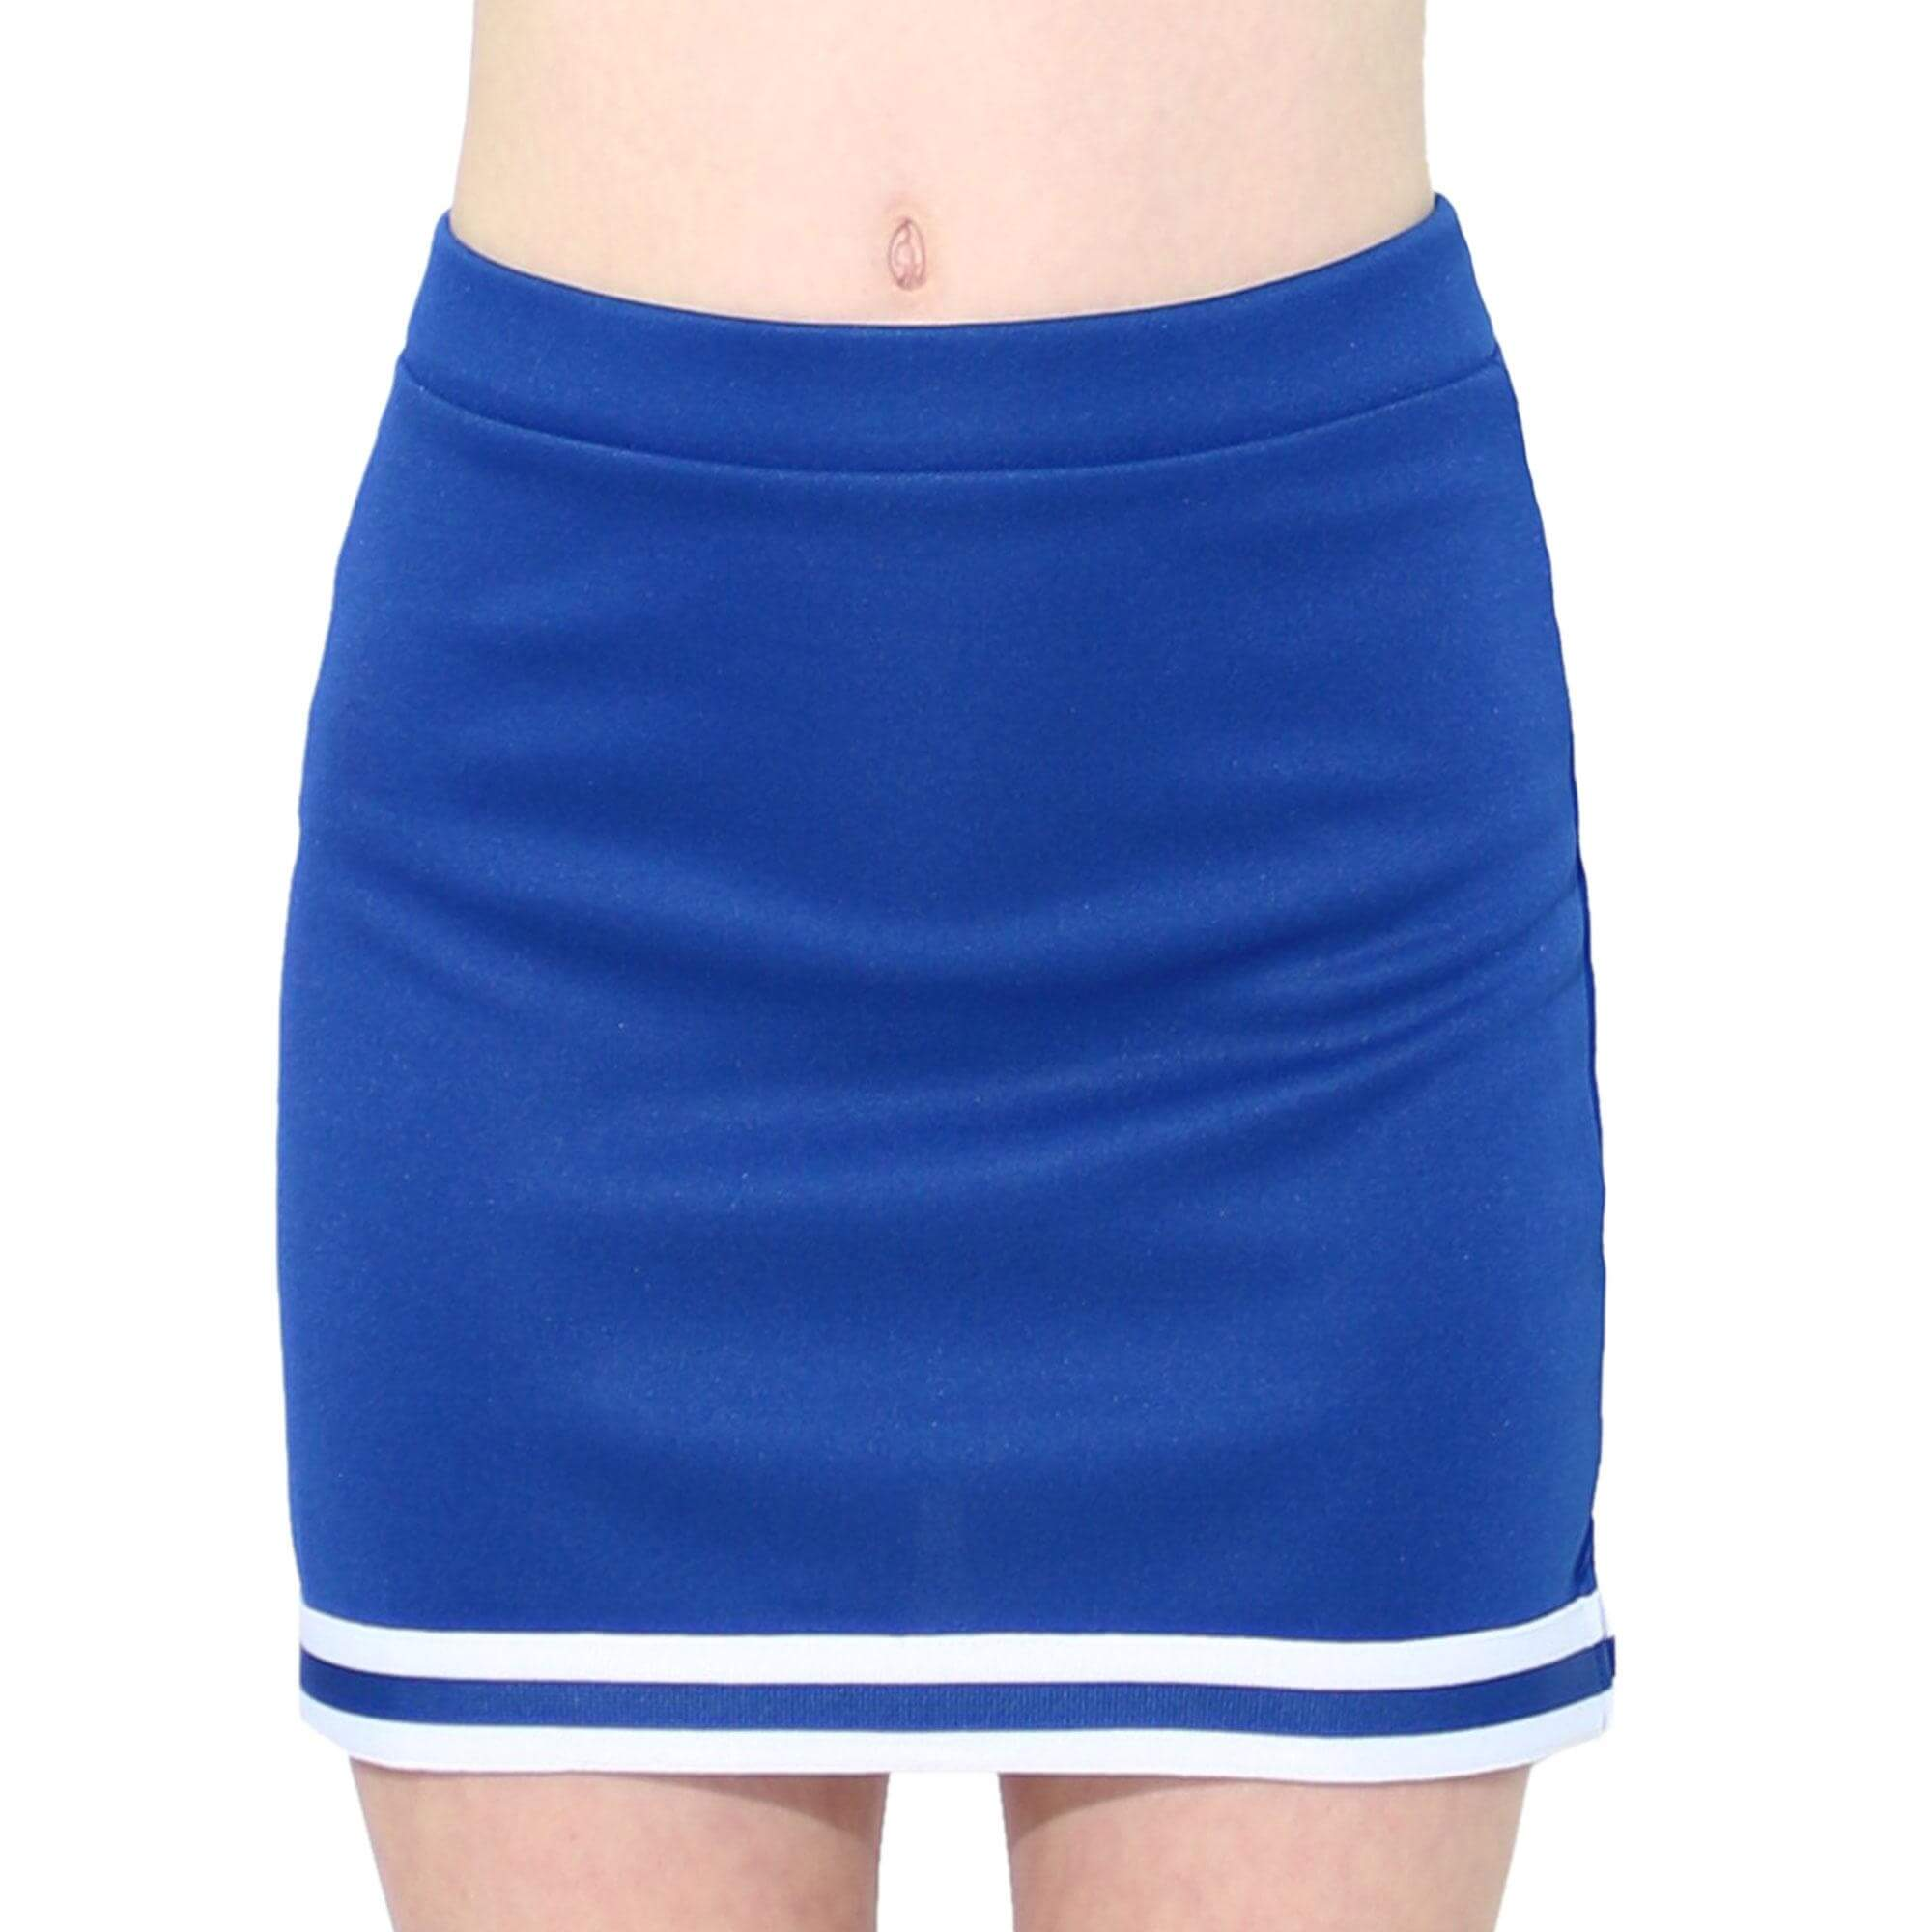 Danzcue Child A-Line Cheerleading Skirt - Click Image to Close